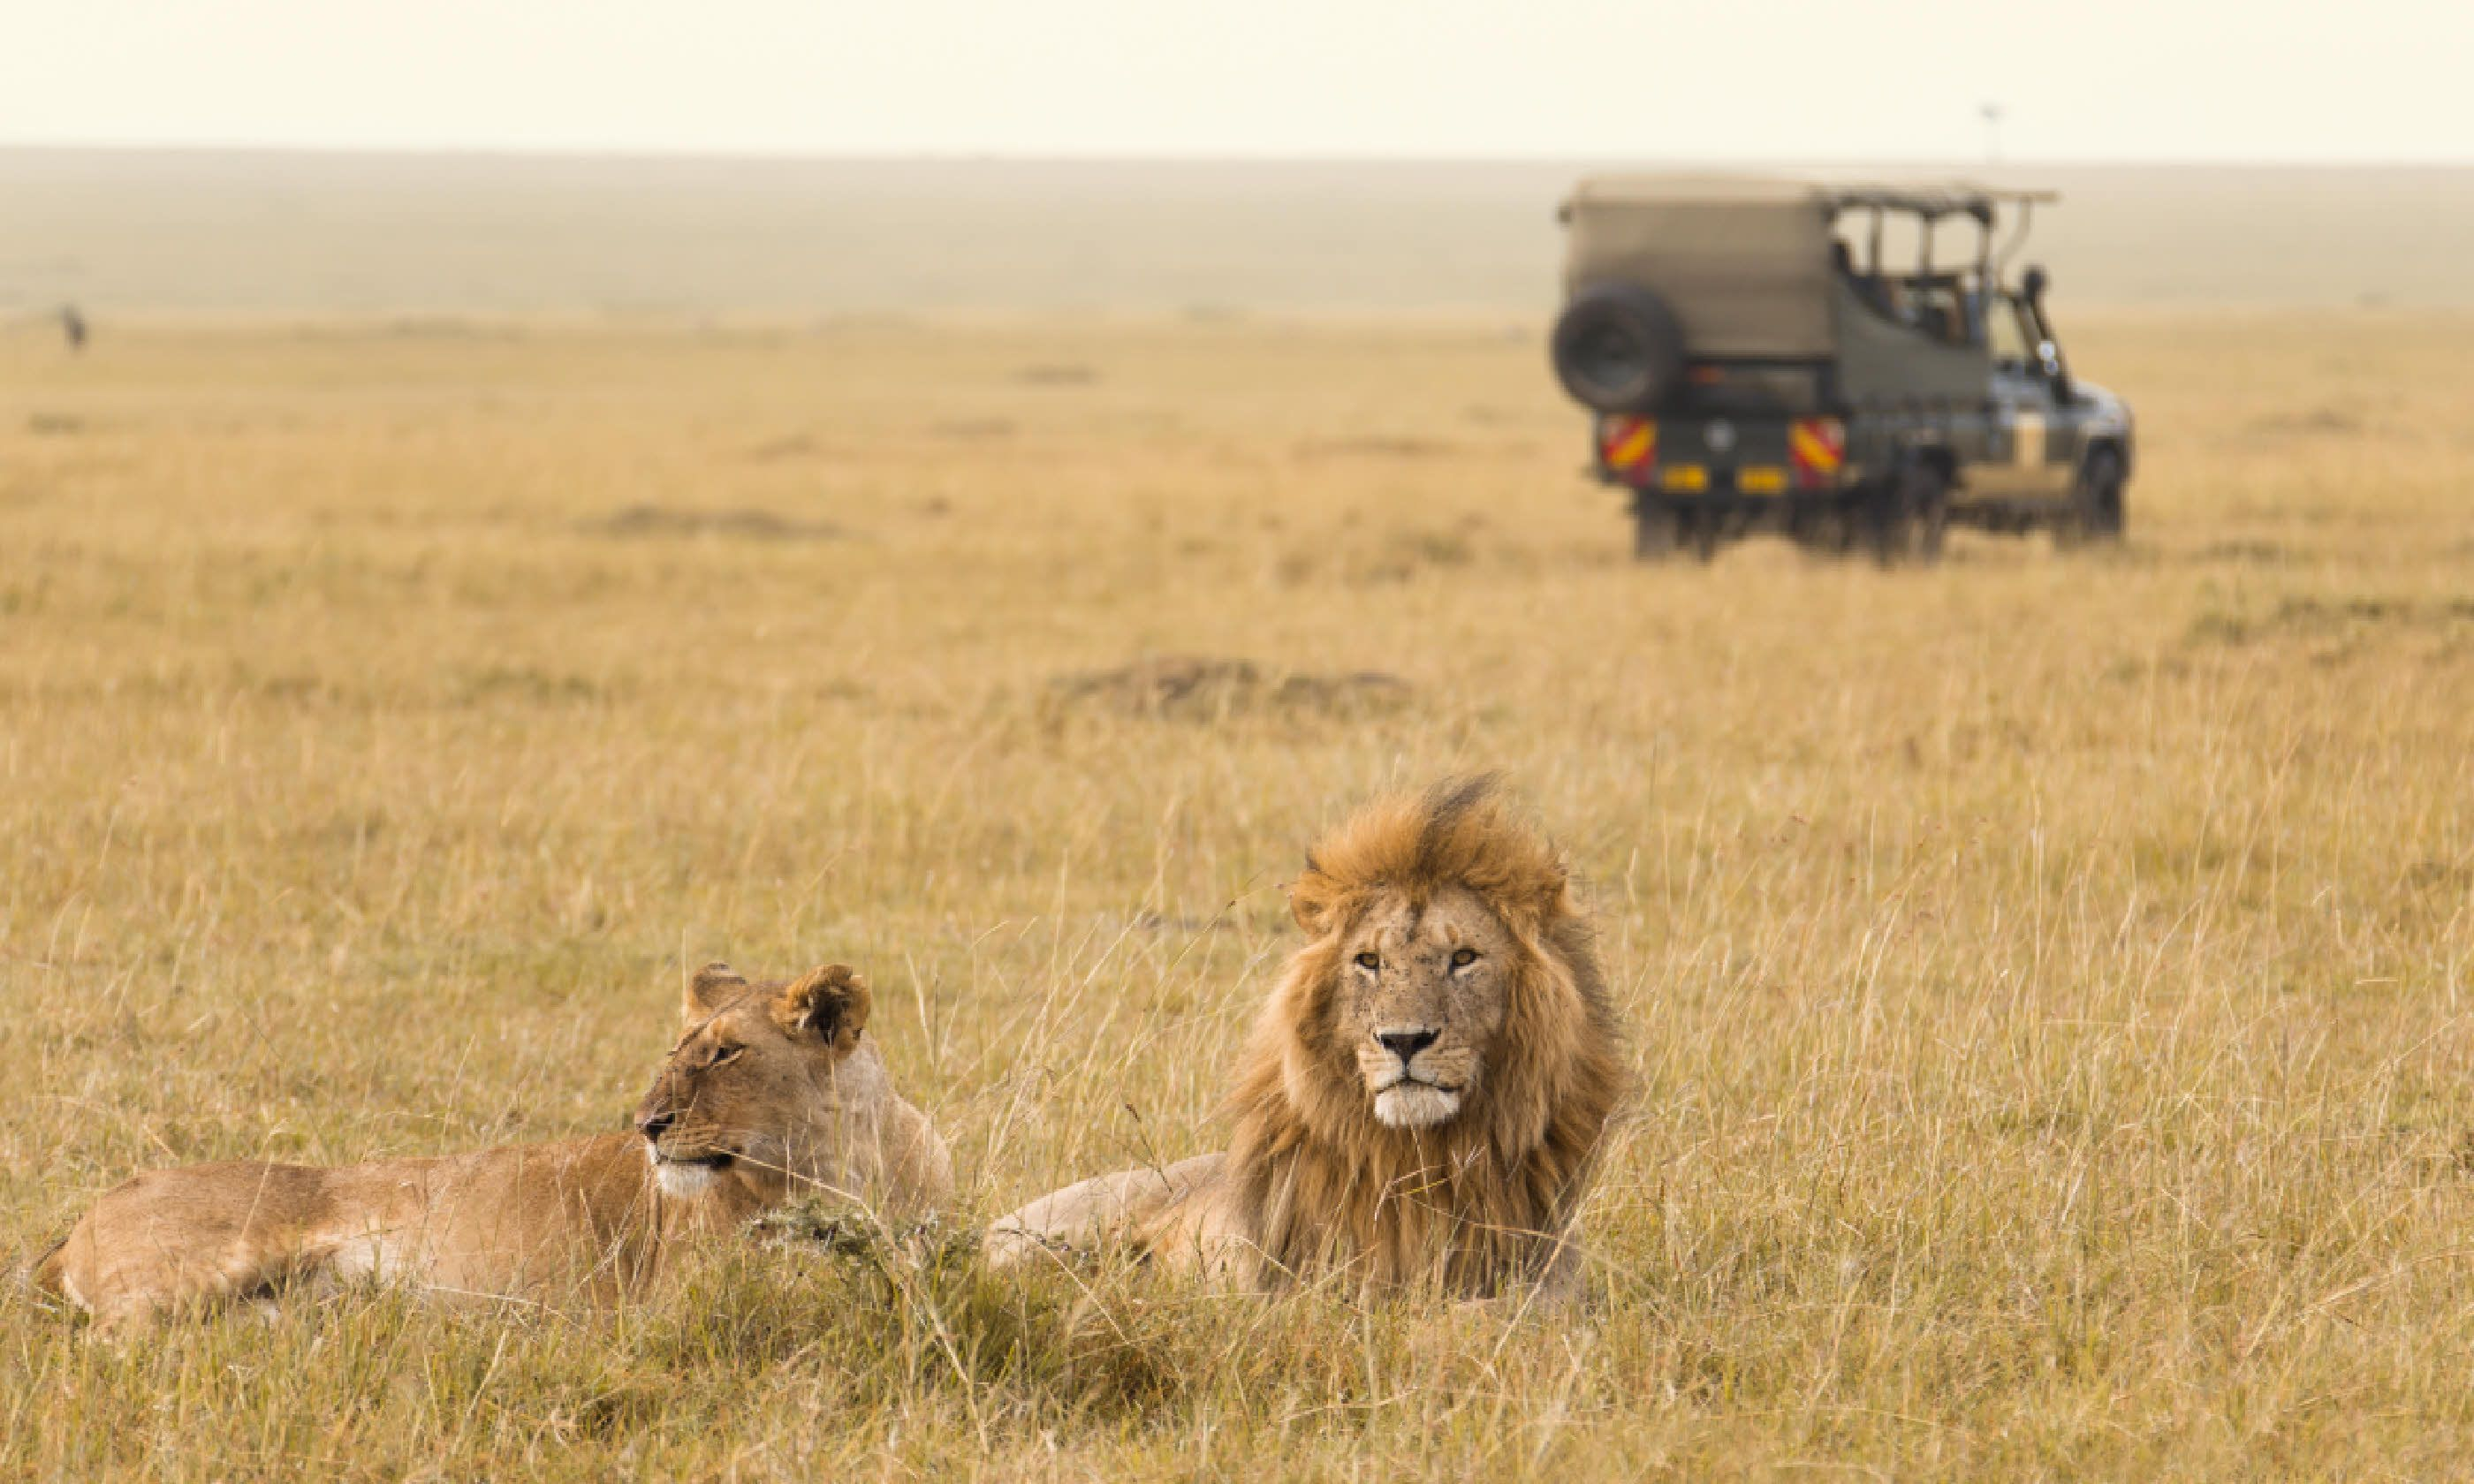 Safari in Masai Mara (Shutterstock)